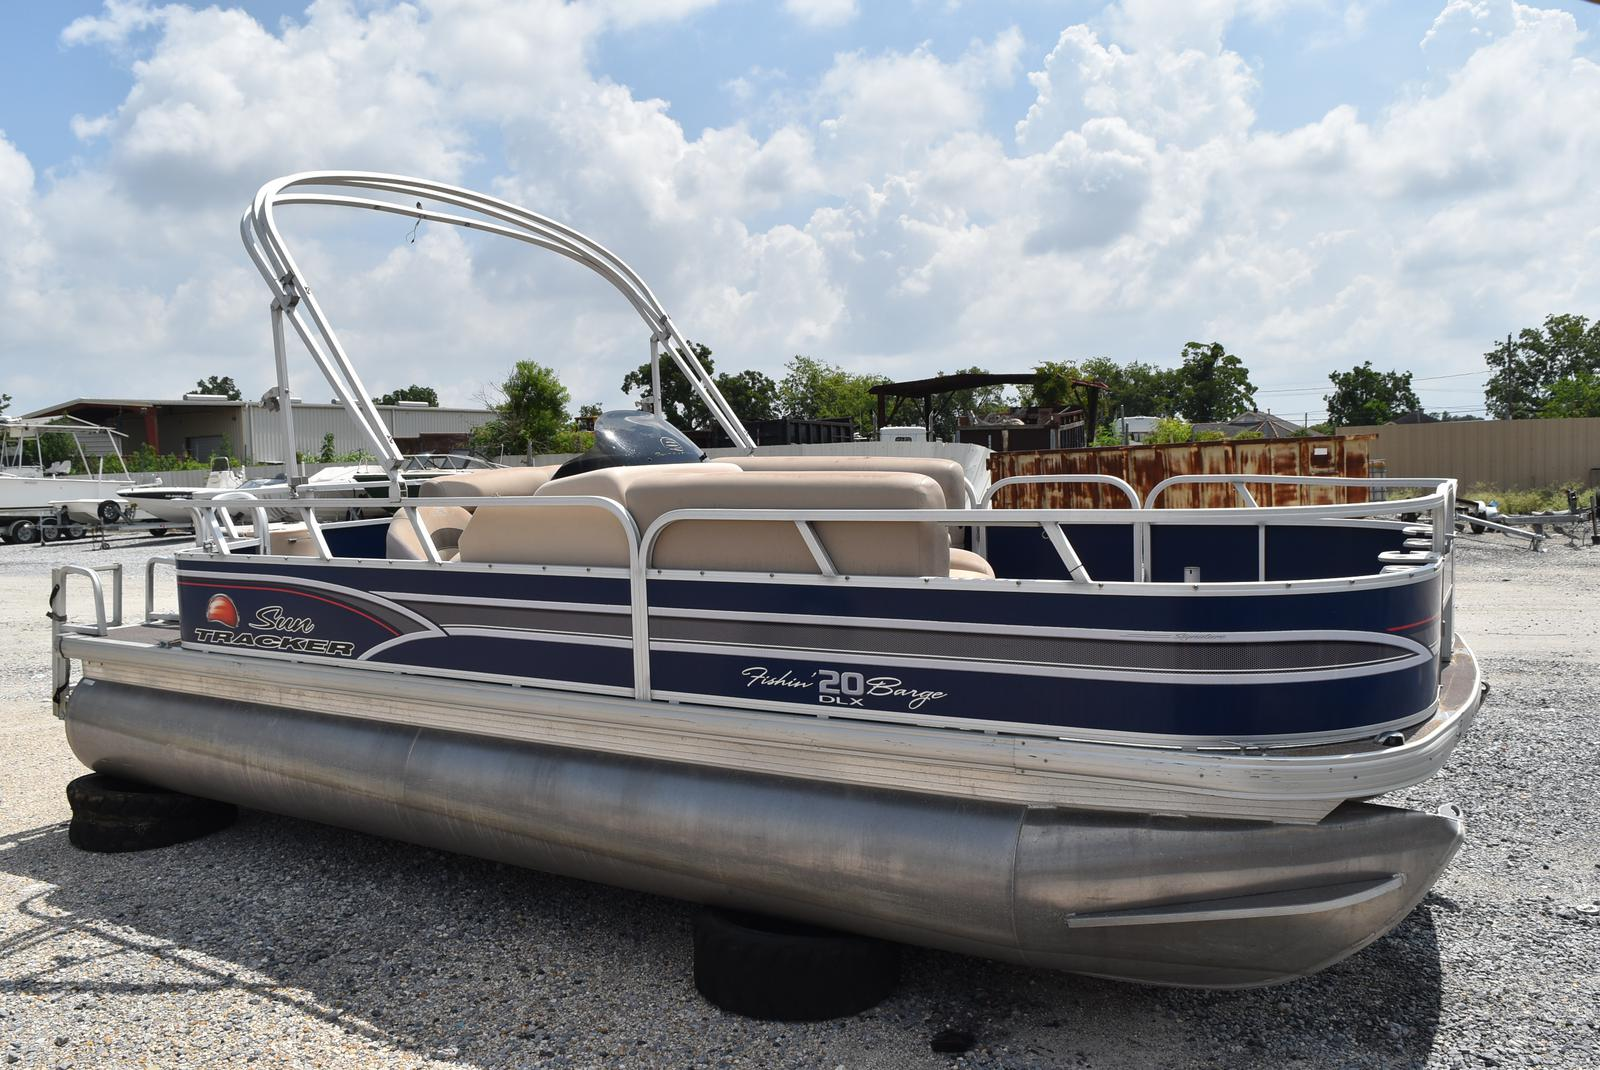 2015 Sun Tracker boat for sale, model of the boat is 20 Party Barge & Image # 6 of 6